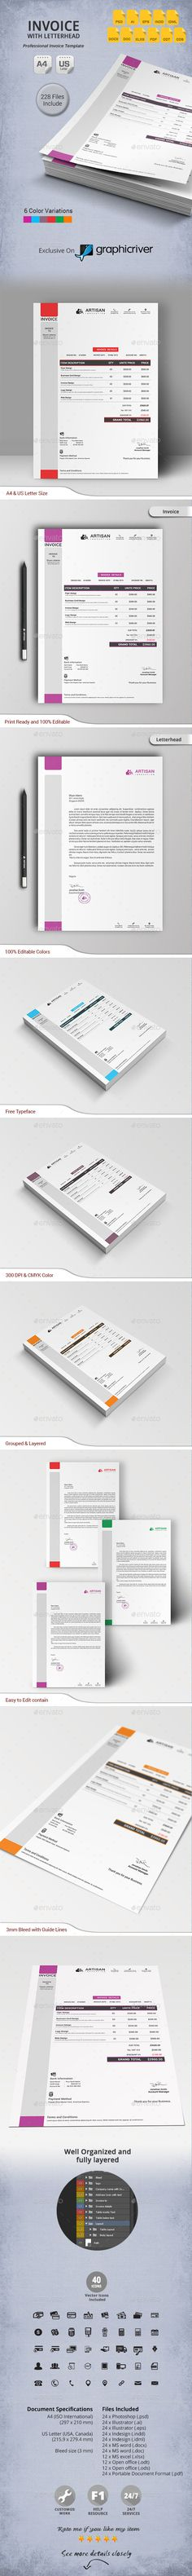 Invoice Download, Print and Stationery - invoice print